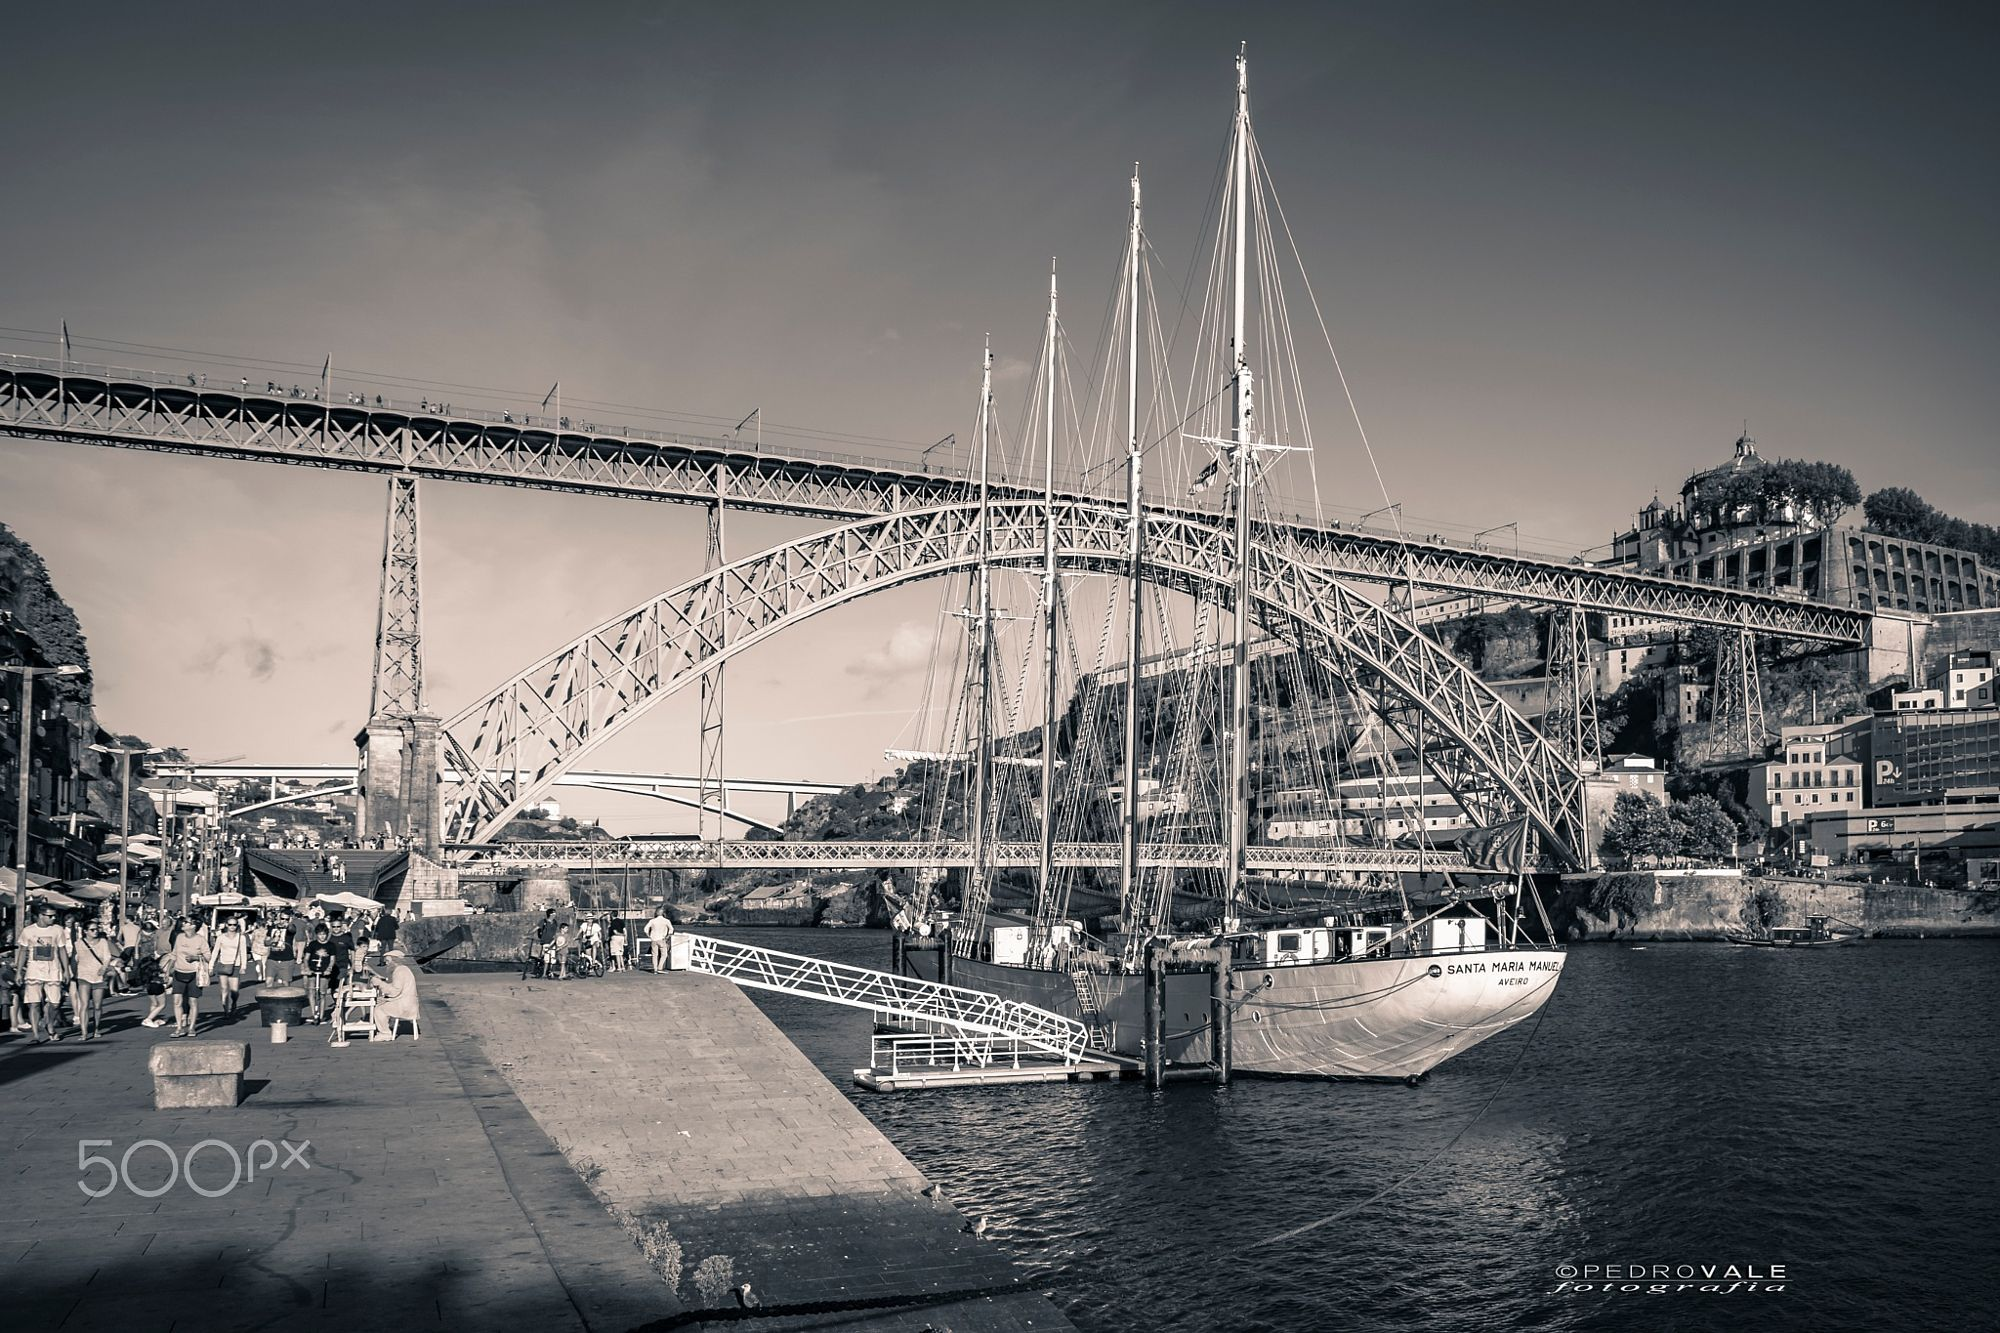 """#500px Select #Photography : Foz do Douro """"Porto"""" by pedrovsvale https://t.co/HerLFQovBt 